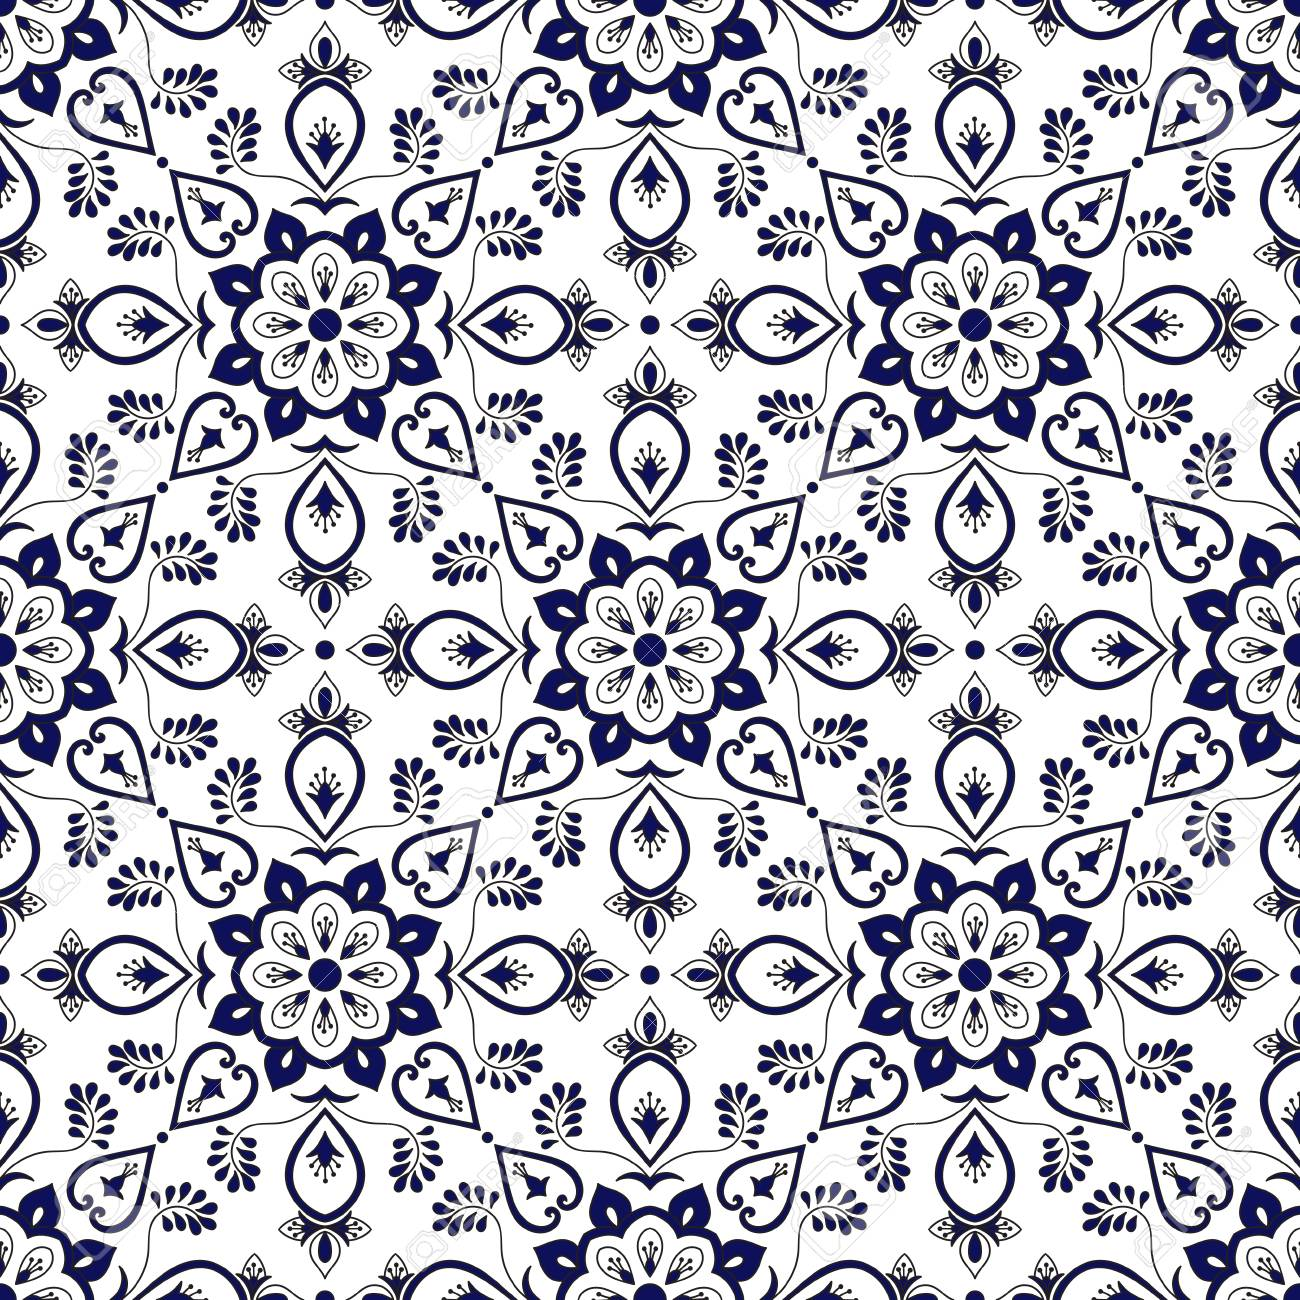 spanish tile pattern vector with blue and white ornaments portuguese